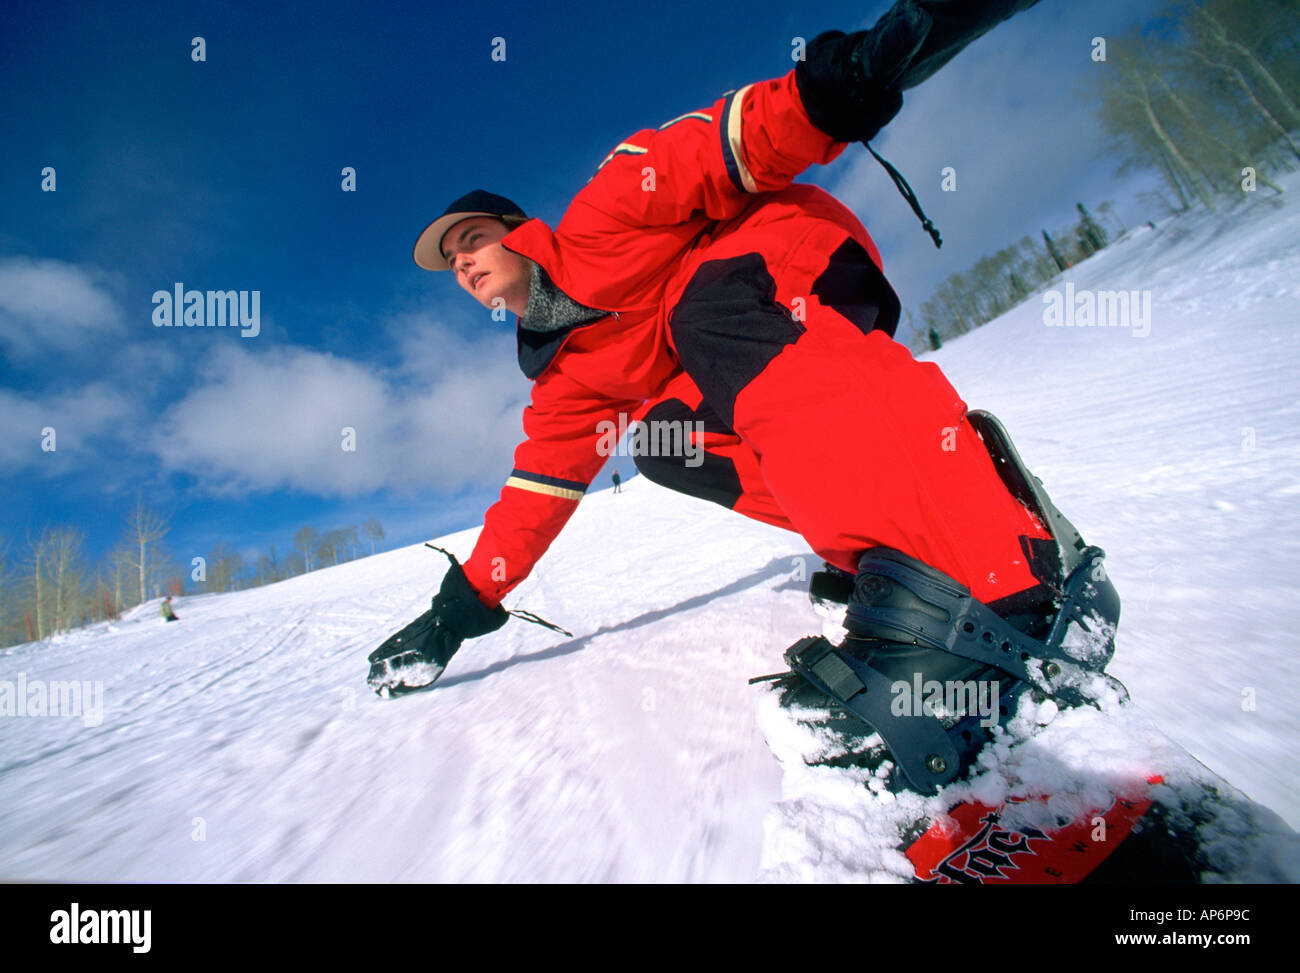 Snowboarder in red skiwear balancing on hand, down-piste, Steamboat Springs, Colorado, USA. - Stock Image